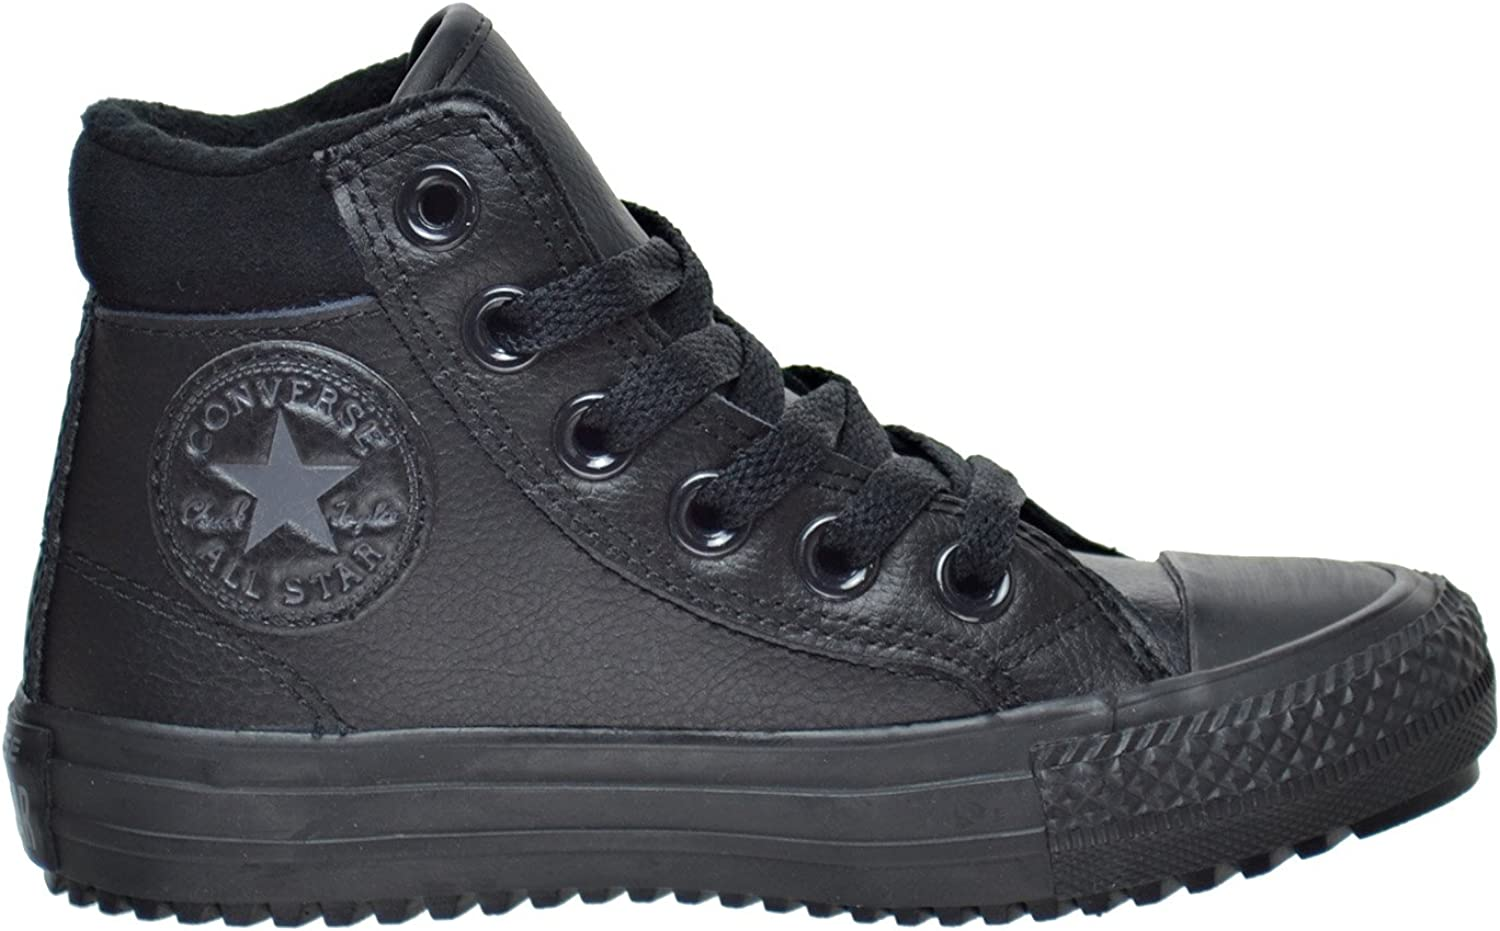 Converse Chuck Taylor All Star Boot Pc Athletic Boys Shoe